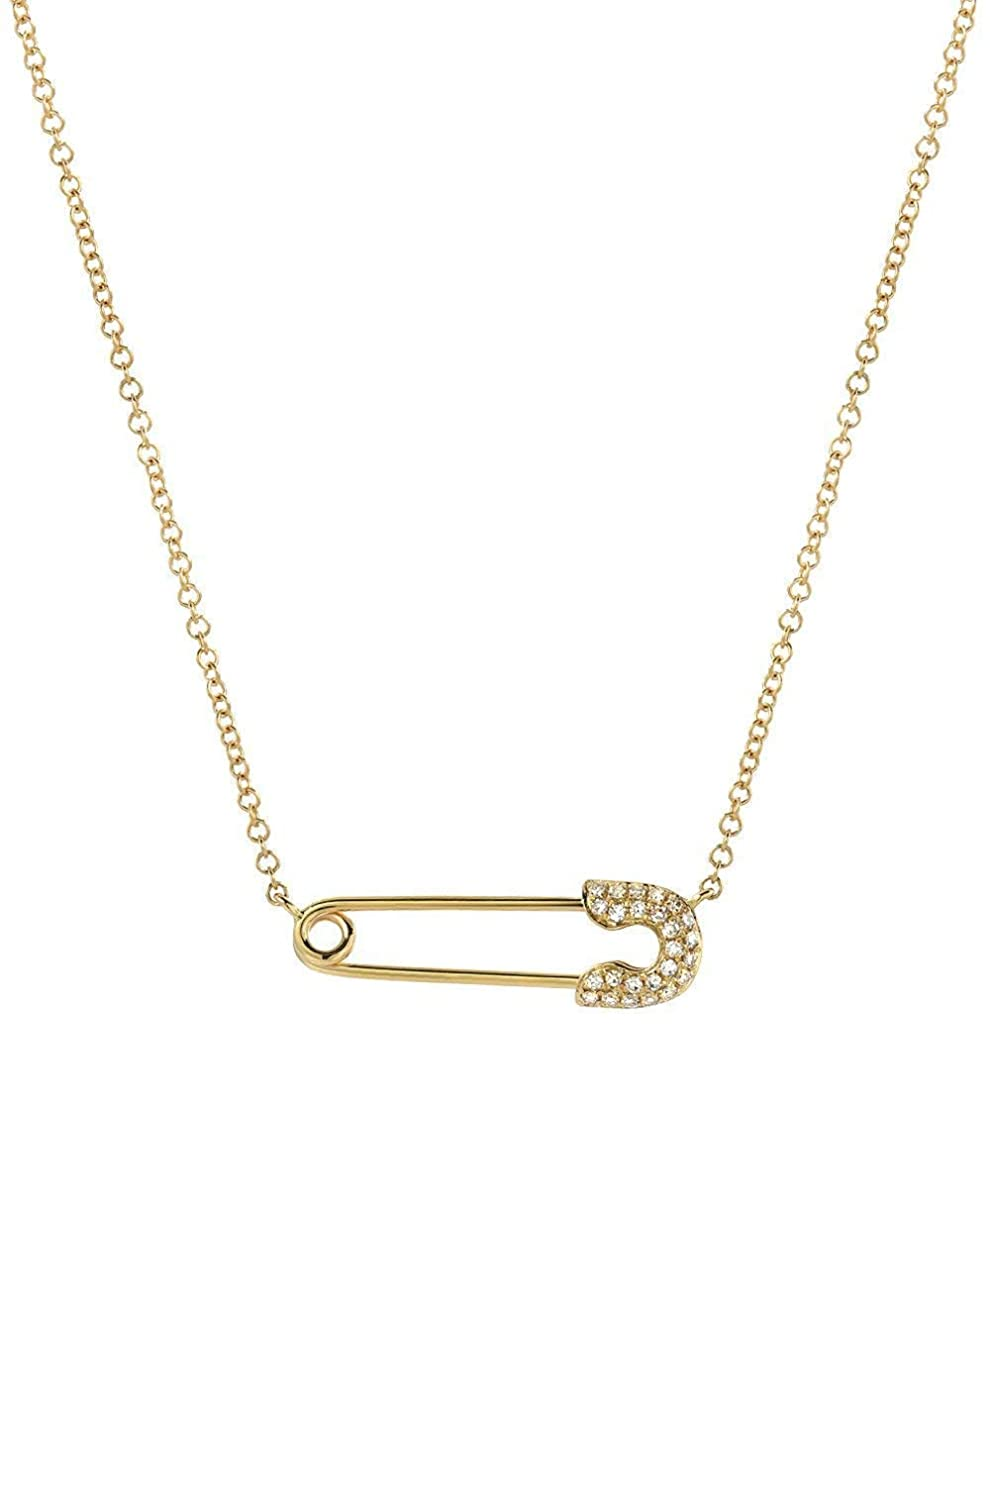 safety pin Gold Safety Pin Pendant Safety Pin Necklace Gold Connector Charm diaper pin pendant holder pin for clothing 20pcs